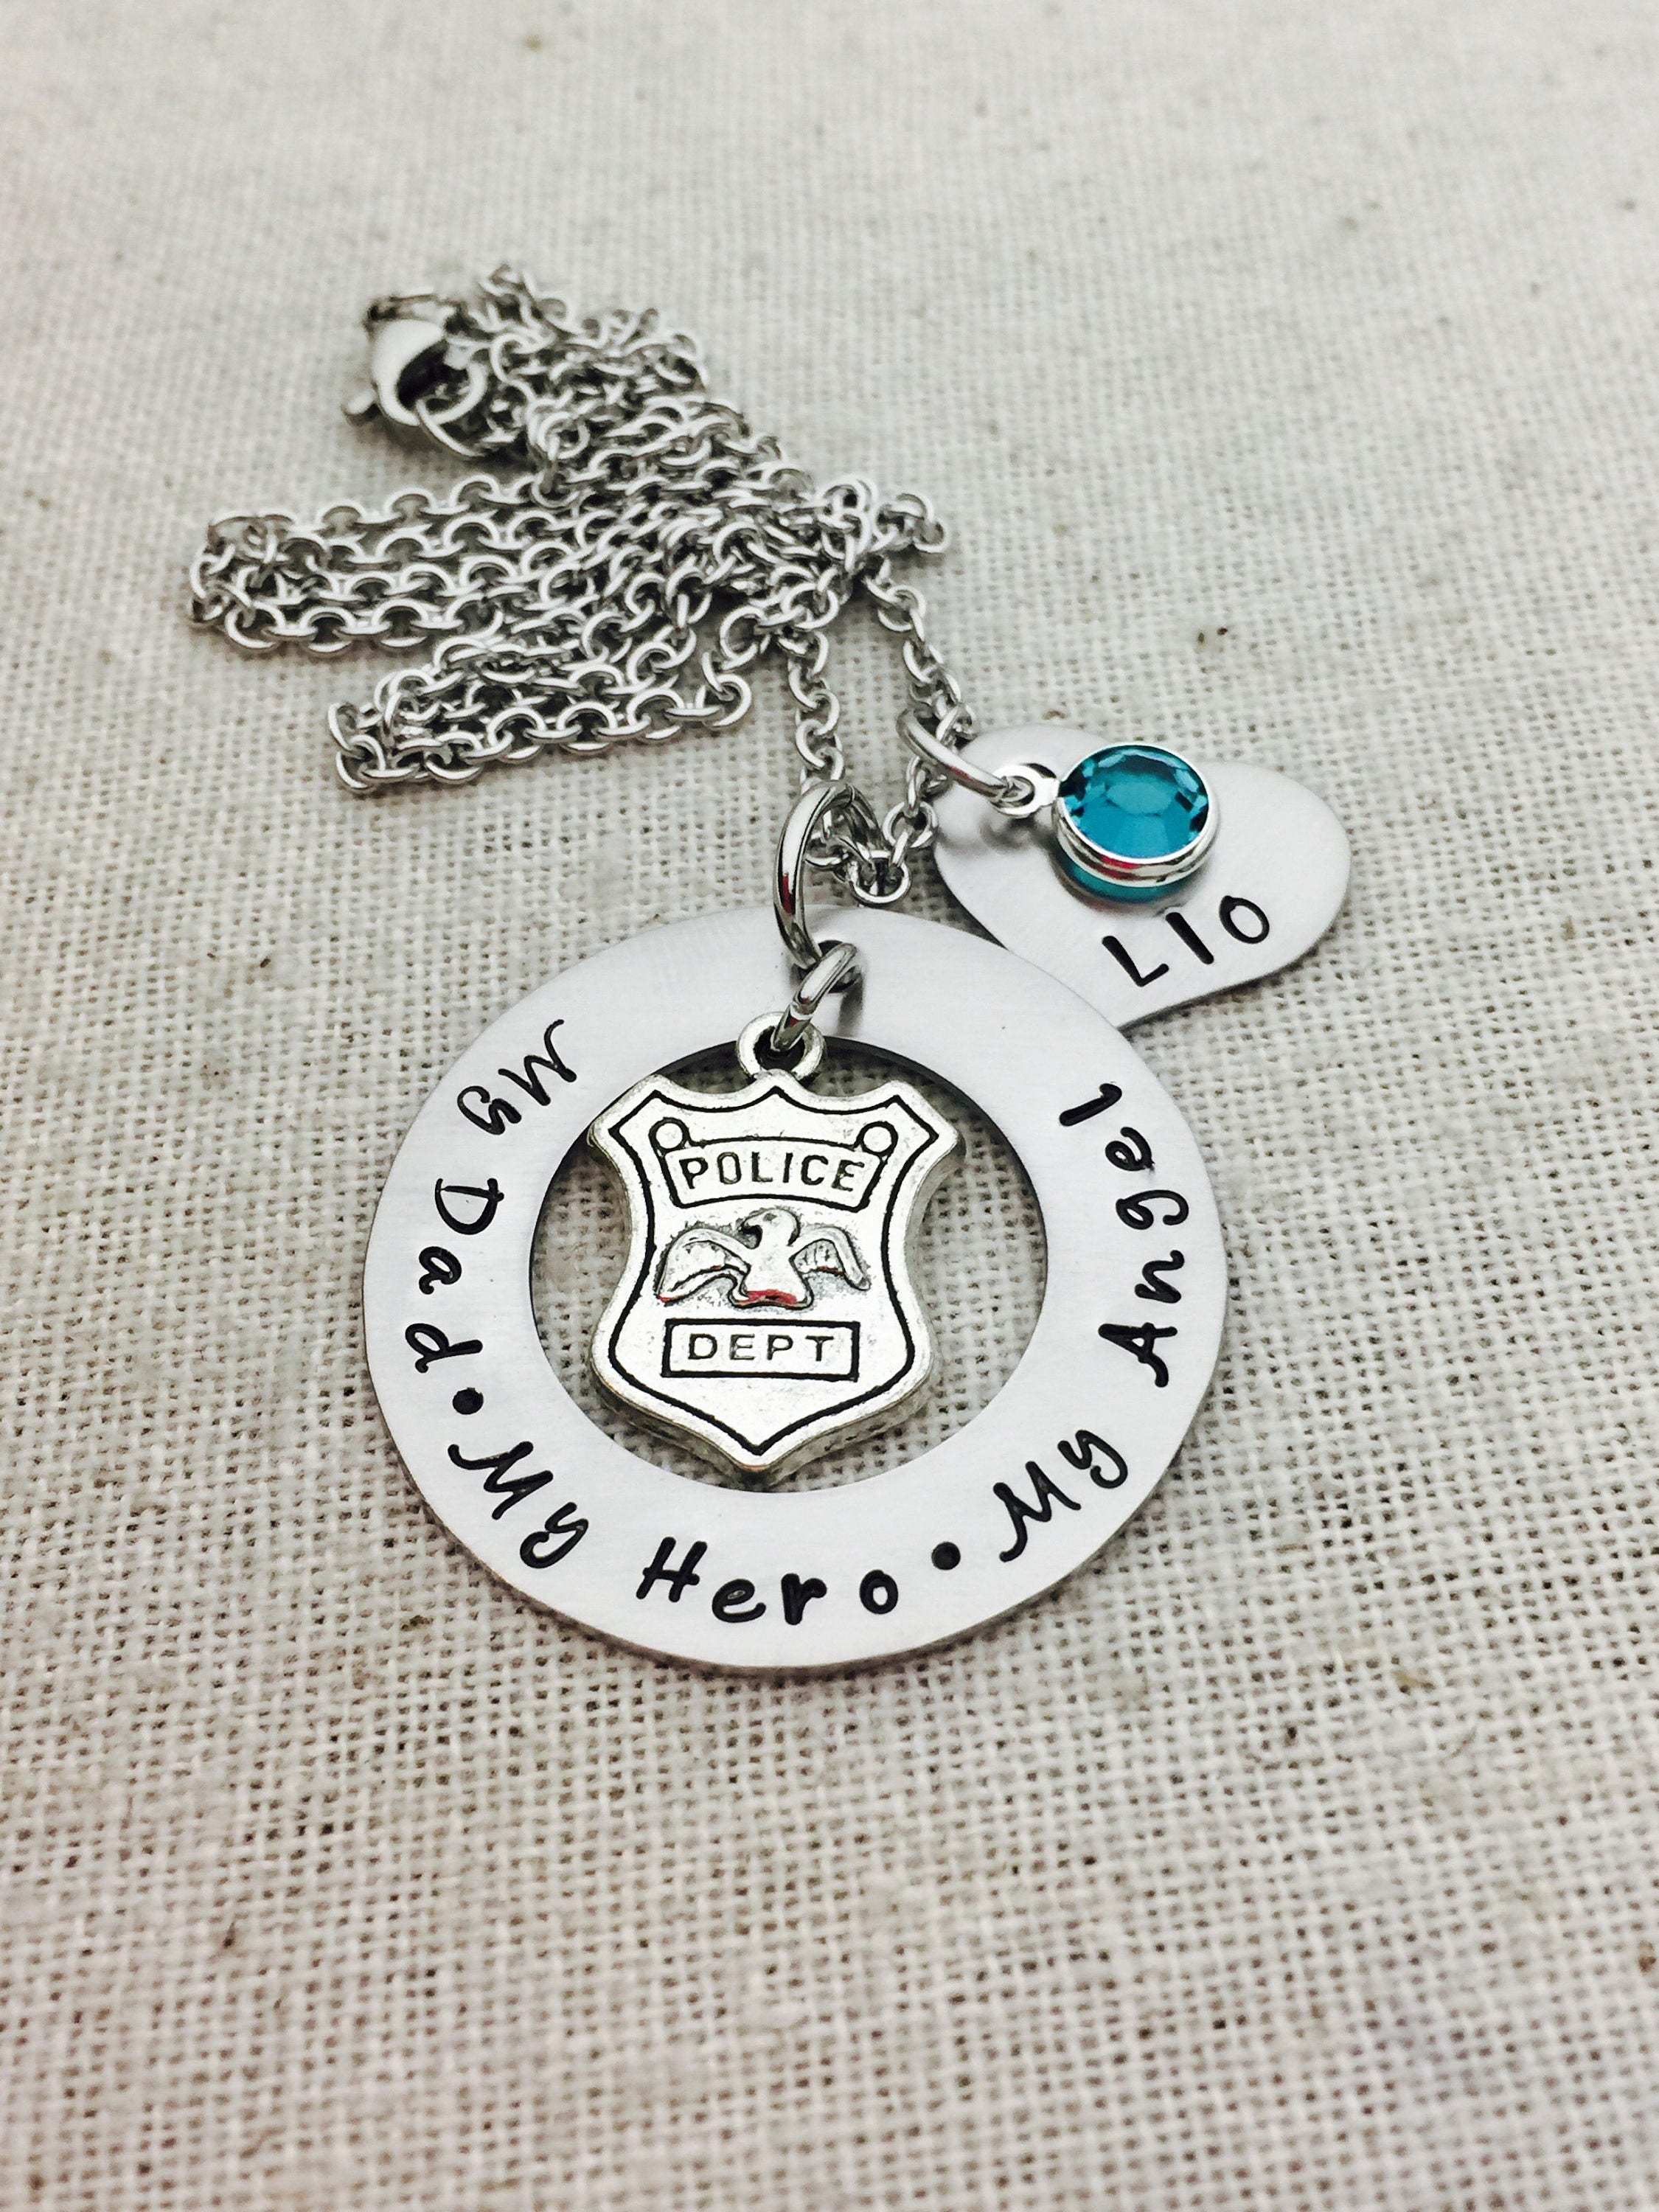 pendant shineon necklace love responders collections page firefighter first police badge ems